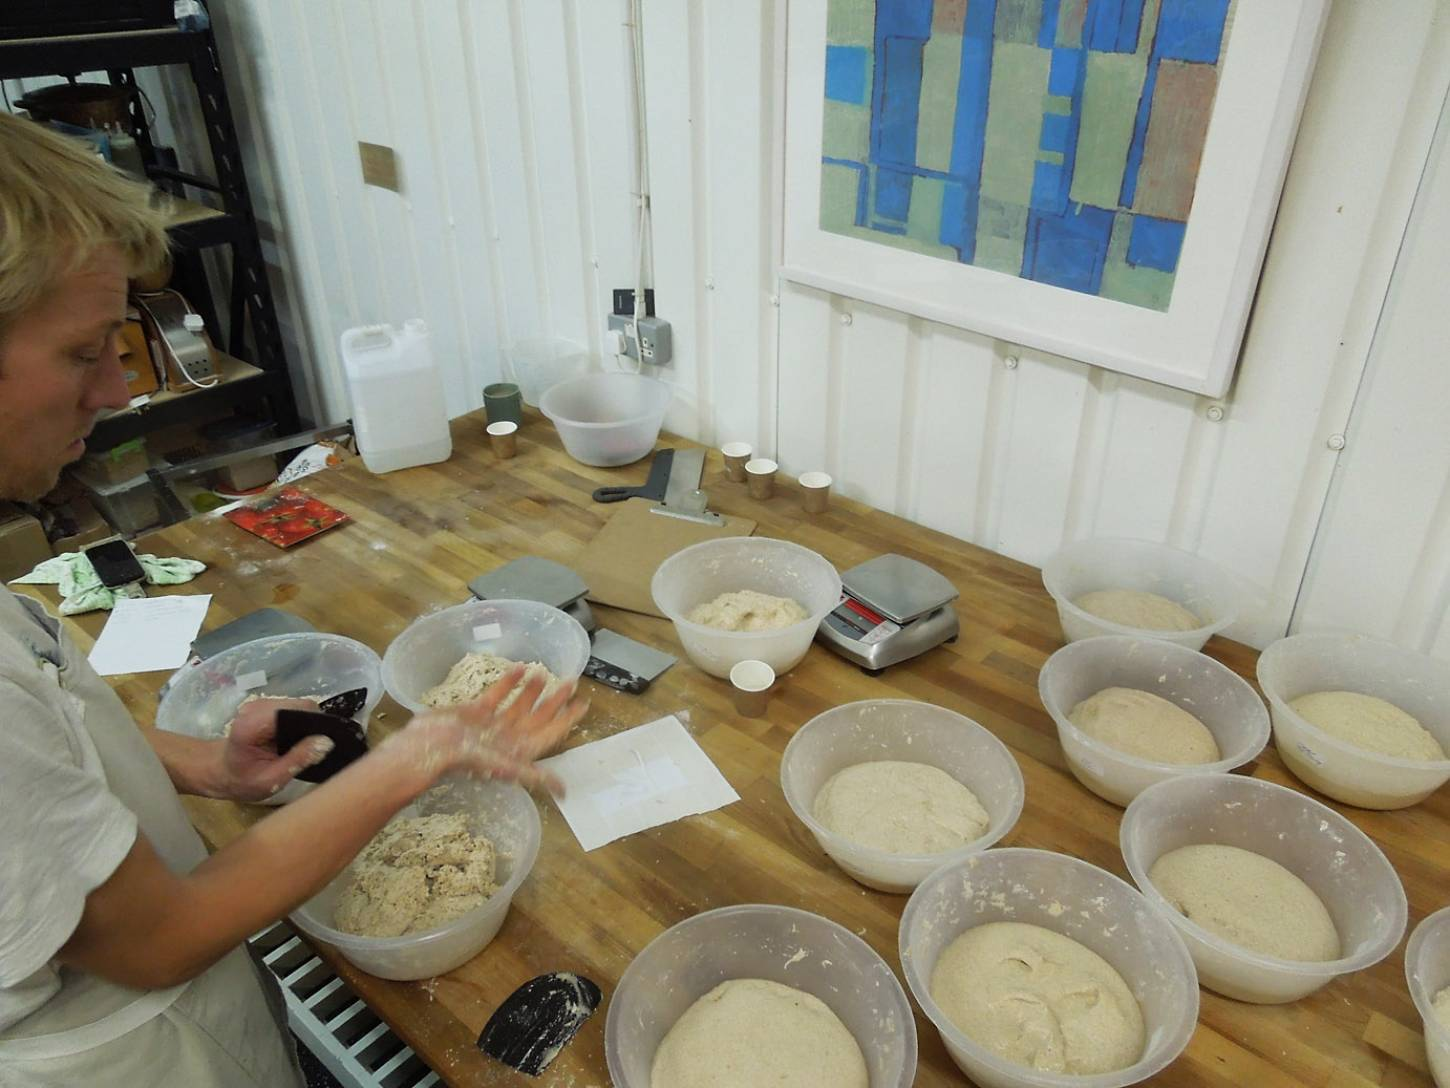 baking trials of our heritage wheats at <a href='http://e5bakehouse.com/' target='_blank'>E5 bakehouse</a> - 7:40pm&nbsp;6<sup>th</sup>&nbsp;Dec.&nbsp;'16